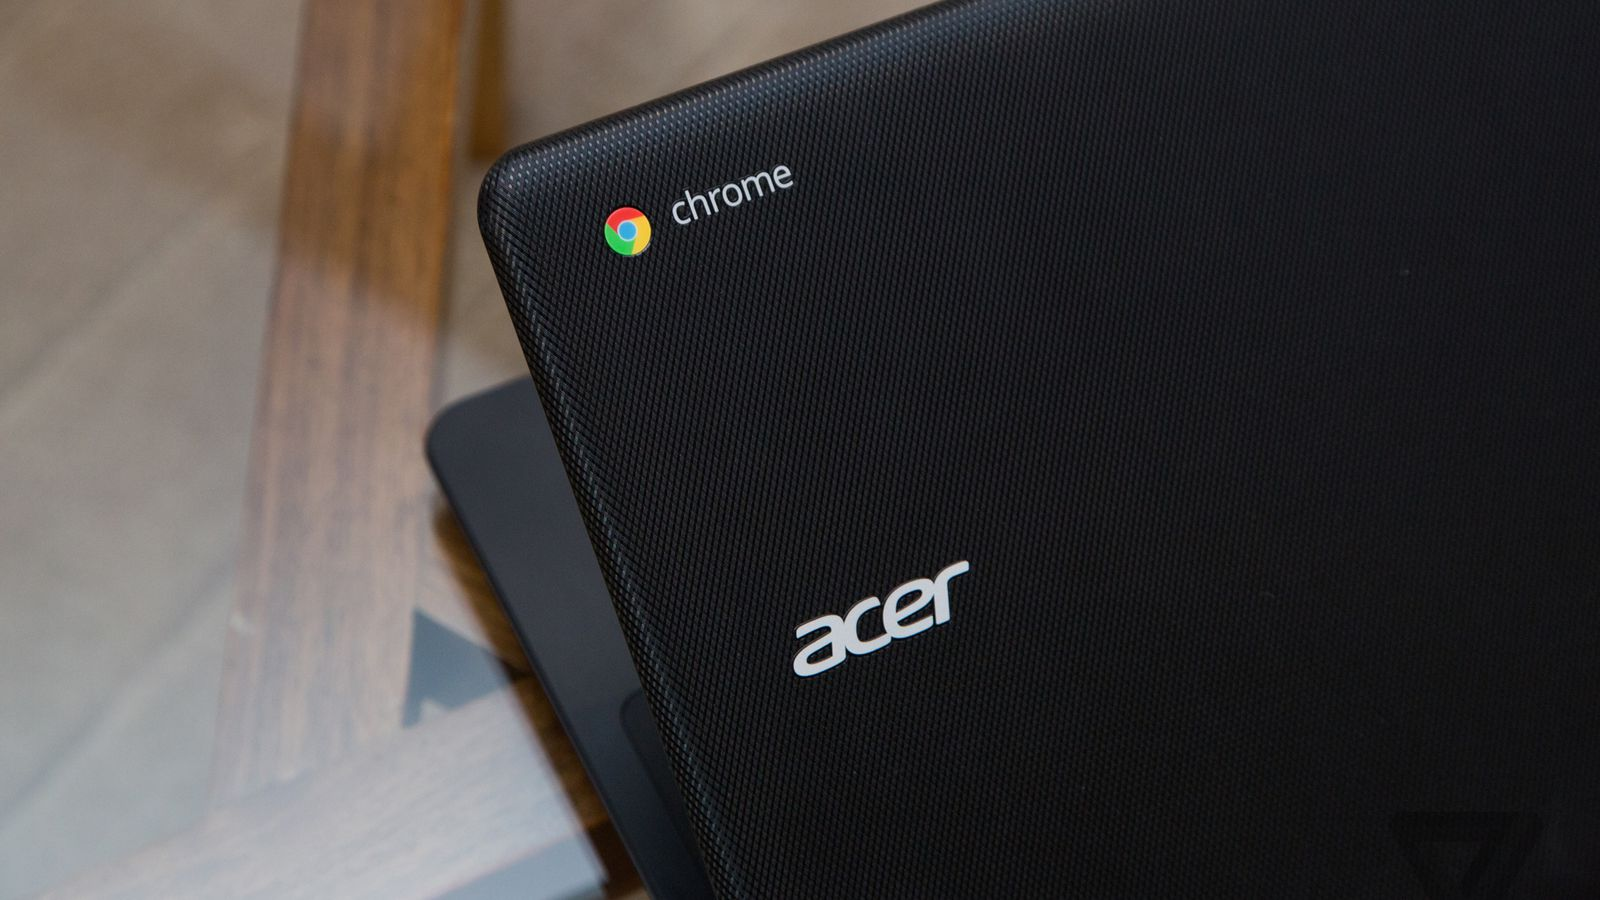 Acer has two tough new Chromebooks for the classroom